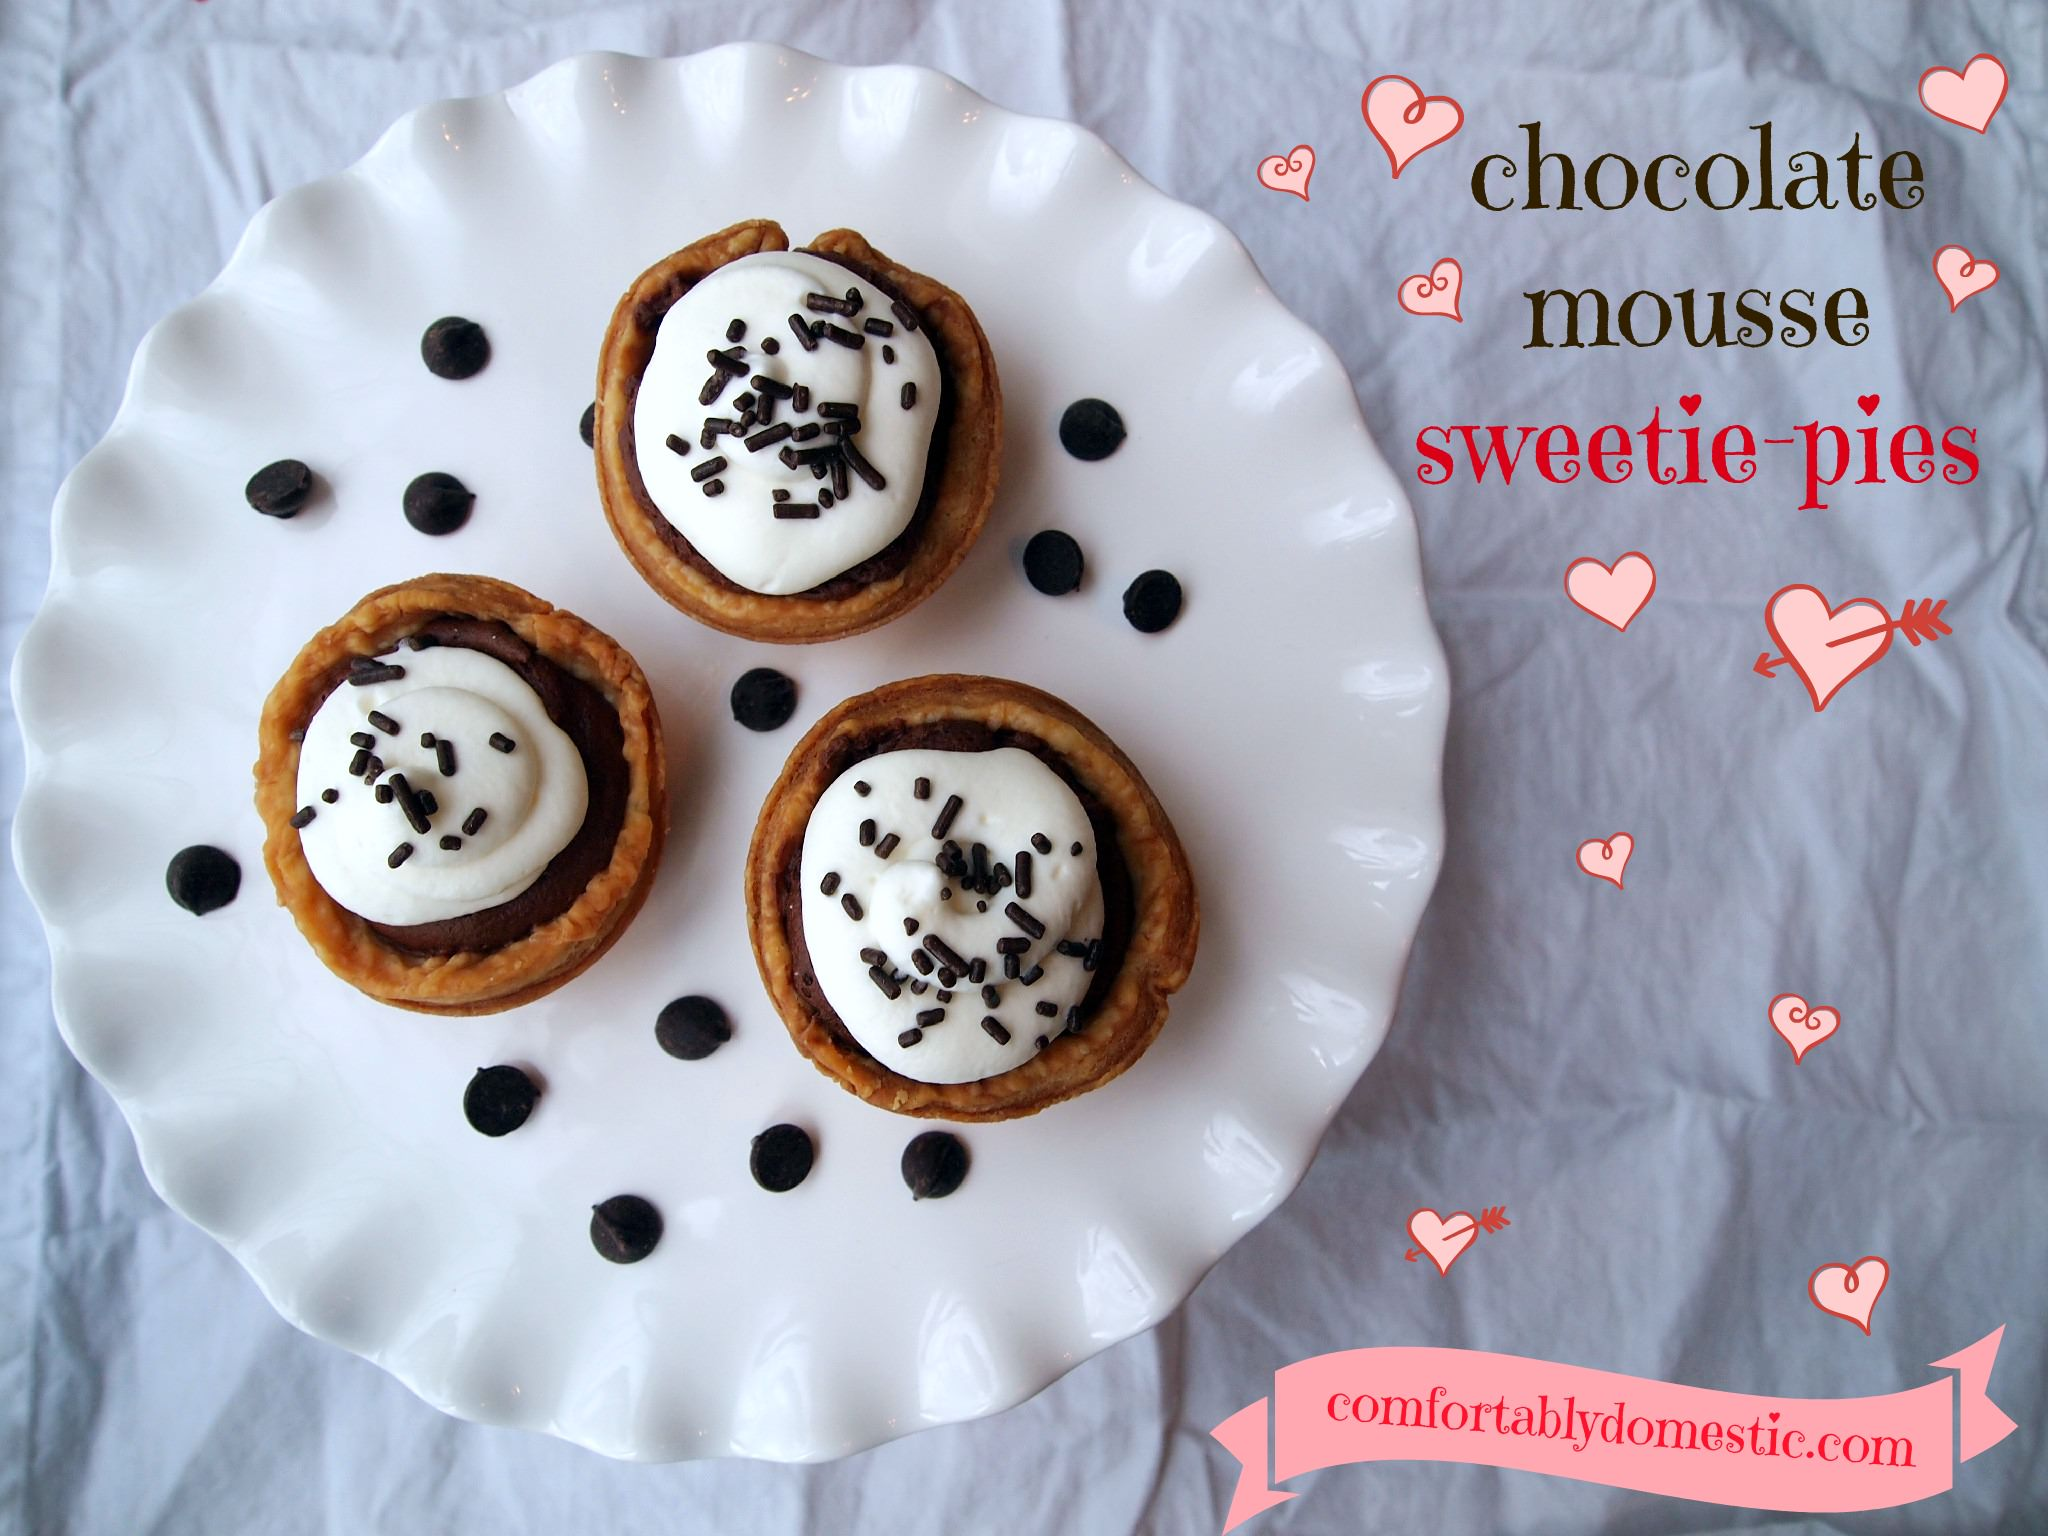 Rich Chocolate Mousse Sweetie Pies - Comfortably Domestic